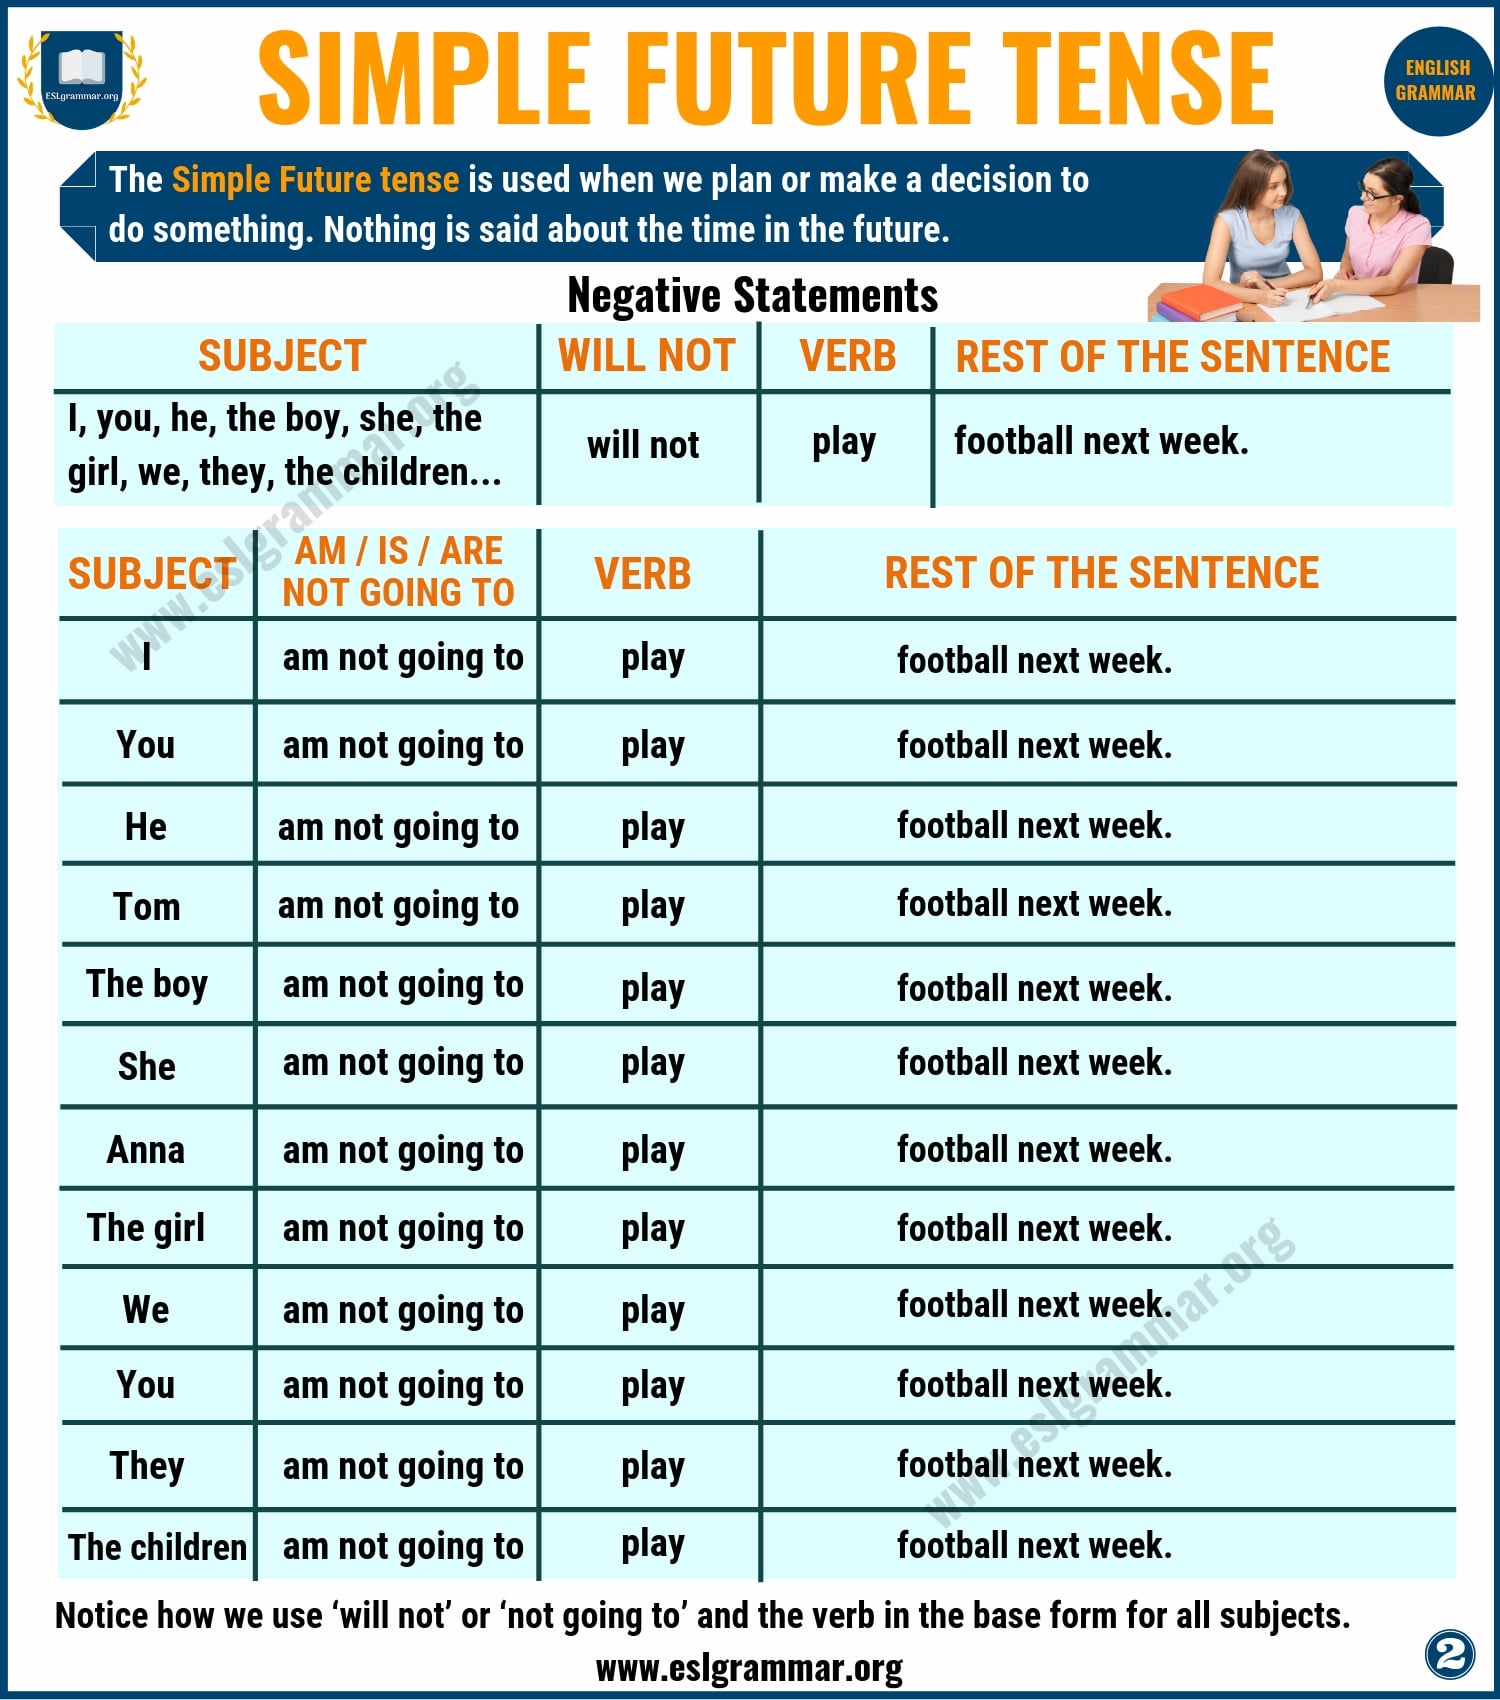 Simple Future Tense Definition And Useful Examples In